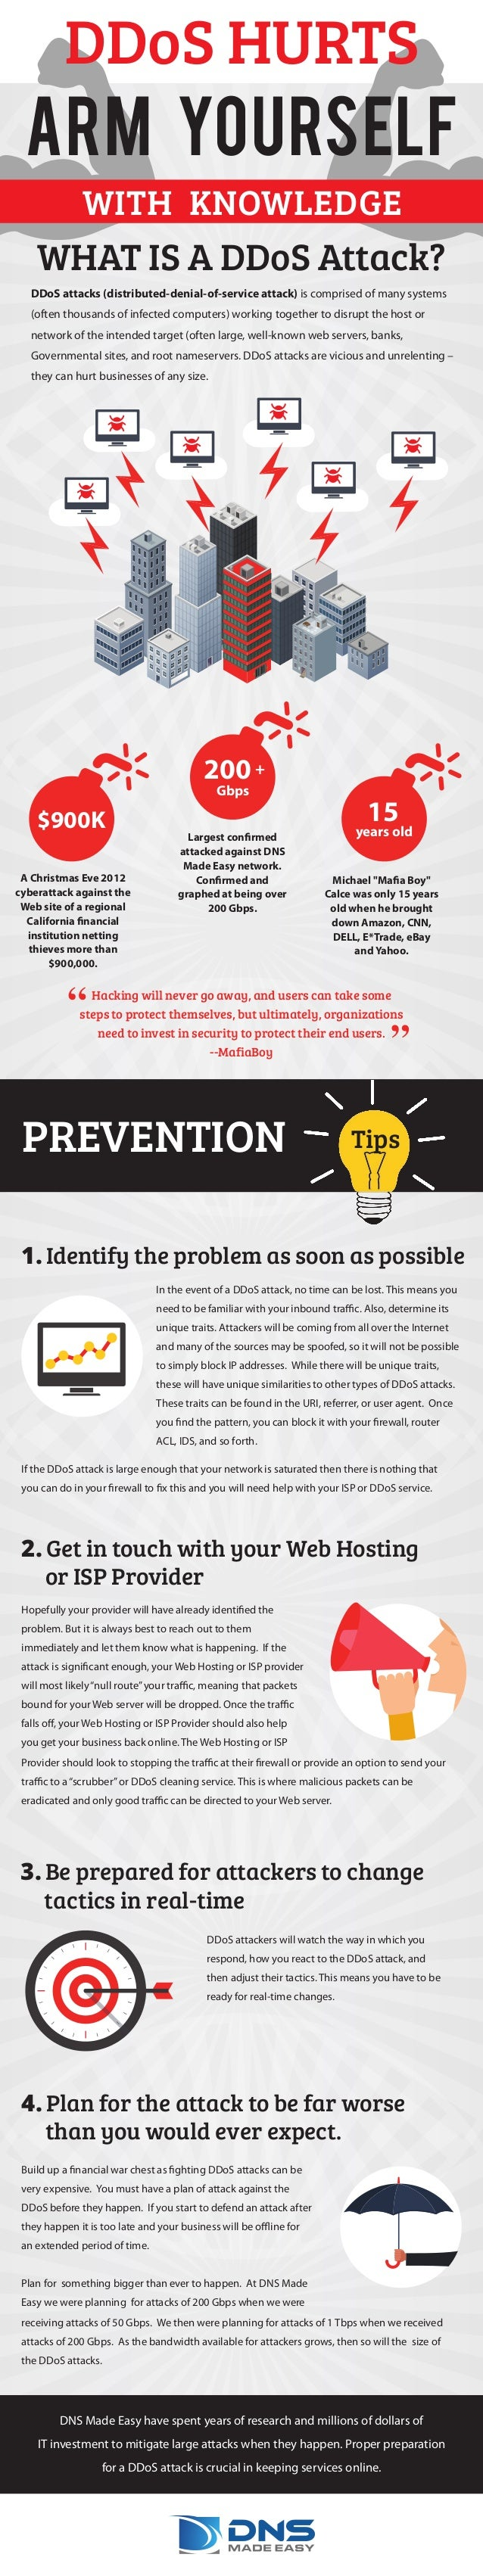 DDoS HURTS ARM YOURSELF WITH KNOWLEDGE WHAT IS A DDoS Attack? DDoS attacks (distributed-denial-of-service attack) is compr...